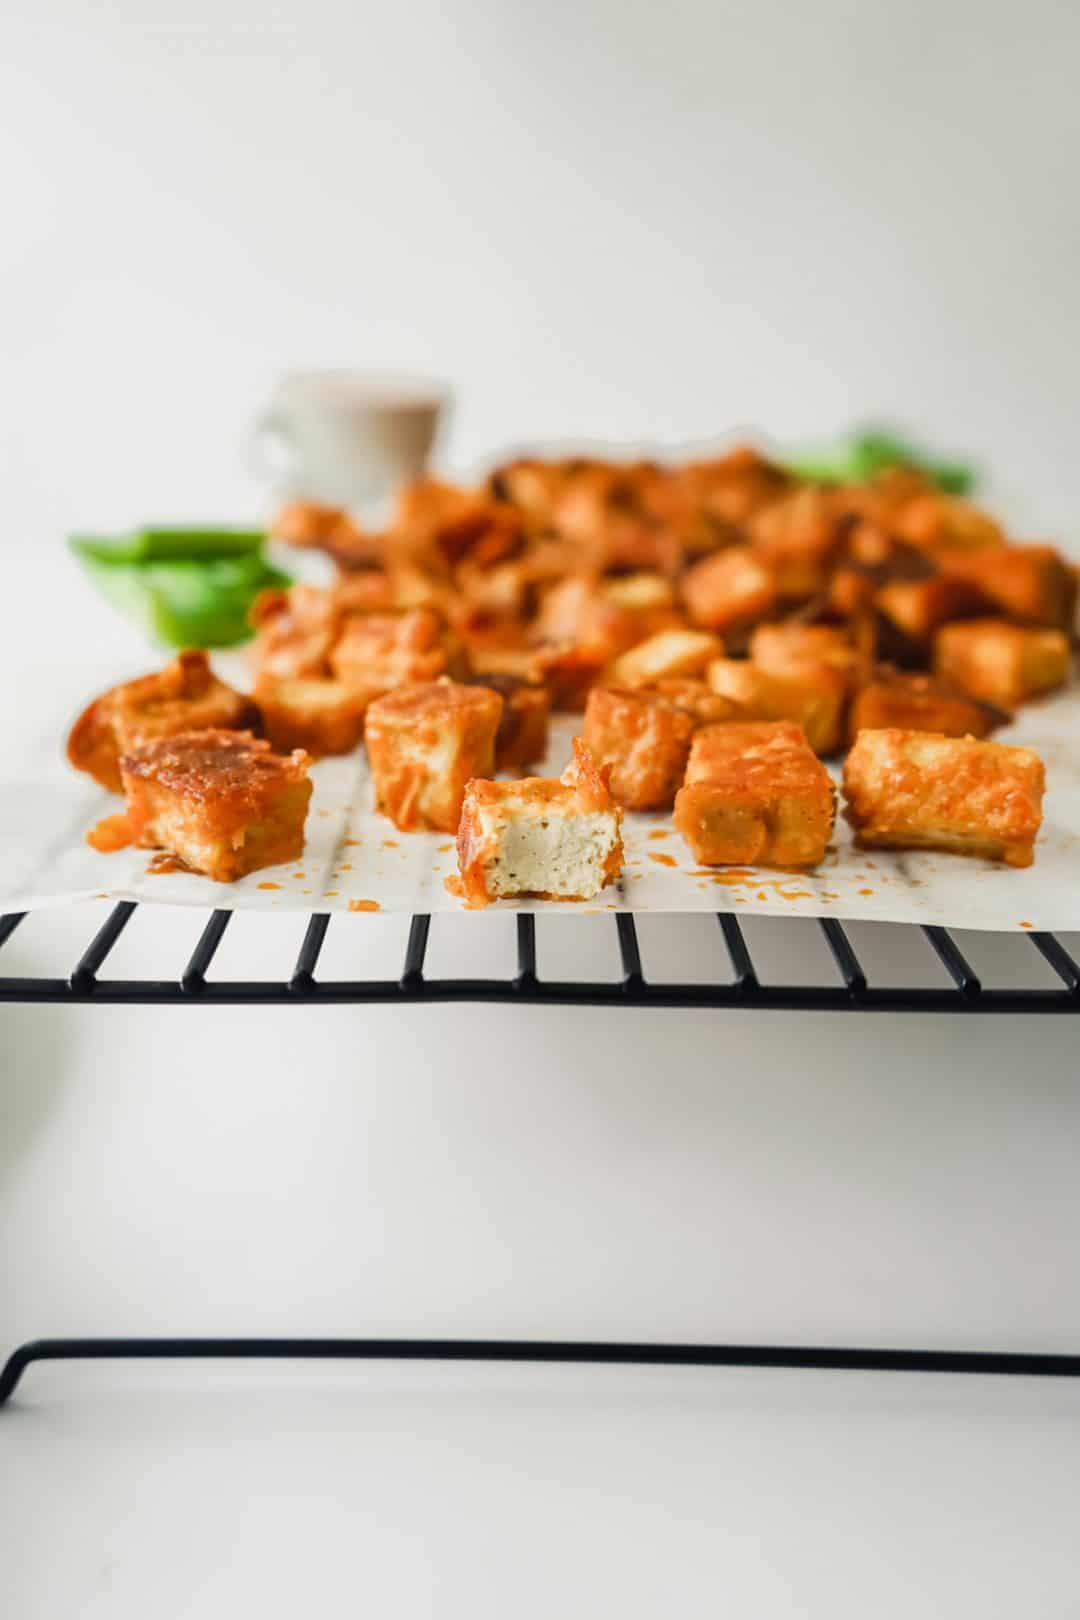 A tray of crispy buffalo tofu bites with a bite taken out of one.